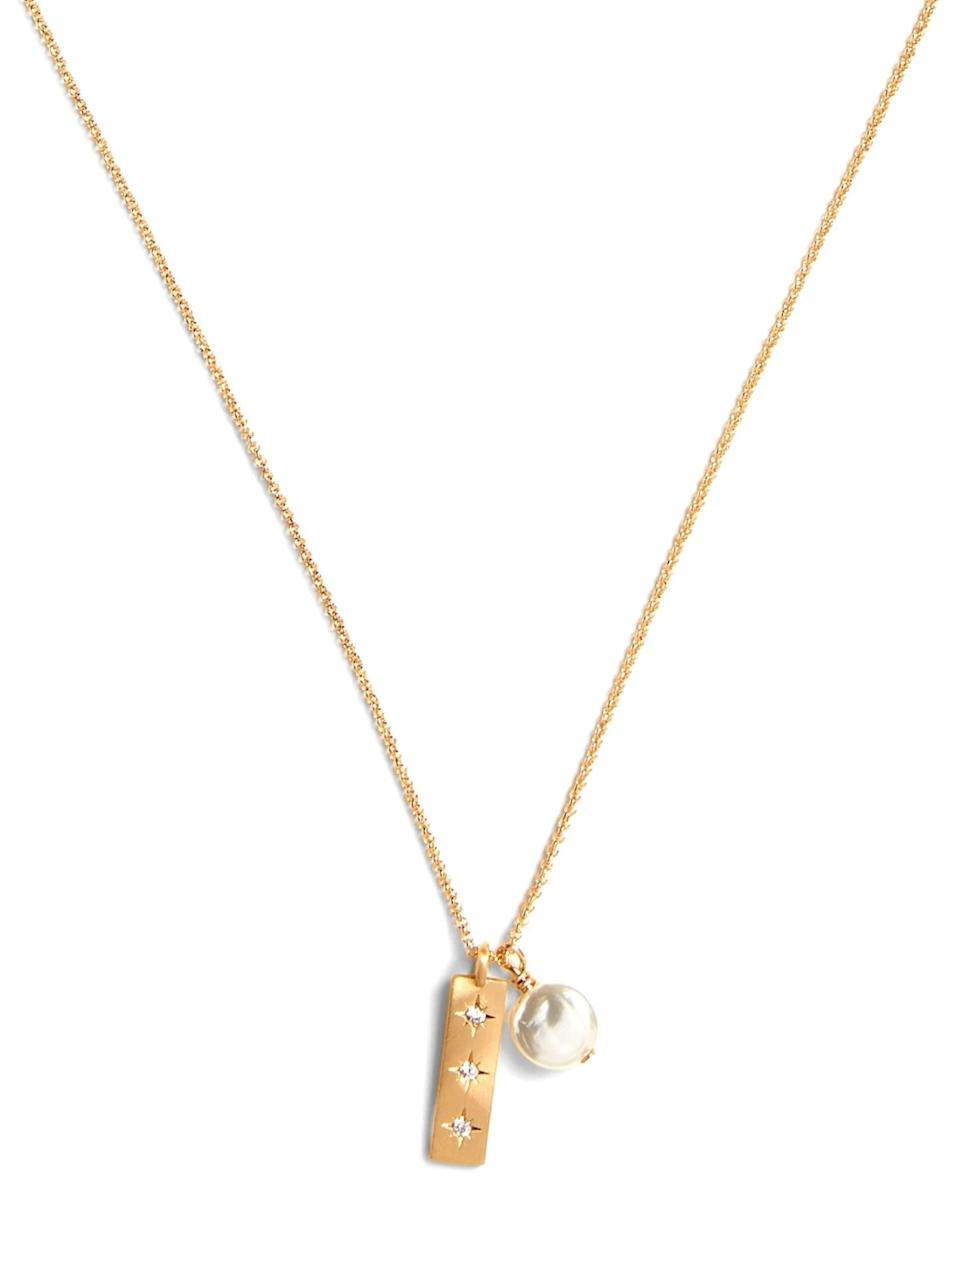 "<p>This <a href=""https://www.popsugar.com/buy/Banana-Republic-Pearl-amp-Bar-Necklace-528414?p_name=Banana%20Republic%20Pearl%20%26amp%3B%20Bar%20Necklace&retailer=bananarepublic.gap.com&pid=528414&price=38&evar1=fab%3Aus&evar9=36291197&evar98=https%3A%2F%2Fwww.popsugar.com%2Ffashion%2Fphoto-gallery%2F36291197%2Fimage%2F46988973%2FBanana-Republic-Pearl-Bar-Necklace&list1=shopping%2Choliday%2Cwinter%2Cgift%20guide%2Cwinter%20fashion%2Choliday%20fashion%2Cfashion%20gifts&prop13=api&pdata=1"" rel=""nofollow noopener"" class=""link rapid-noclick-resp"" target=""_blank"" data-ylk=""slk:Banana Republic Pearl & Bar Necklace"">Banana Republic Pearl & Bar Necklace</a> ($38) is so pretty.</p>"